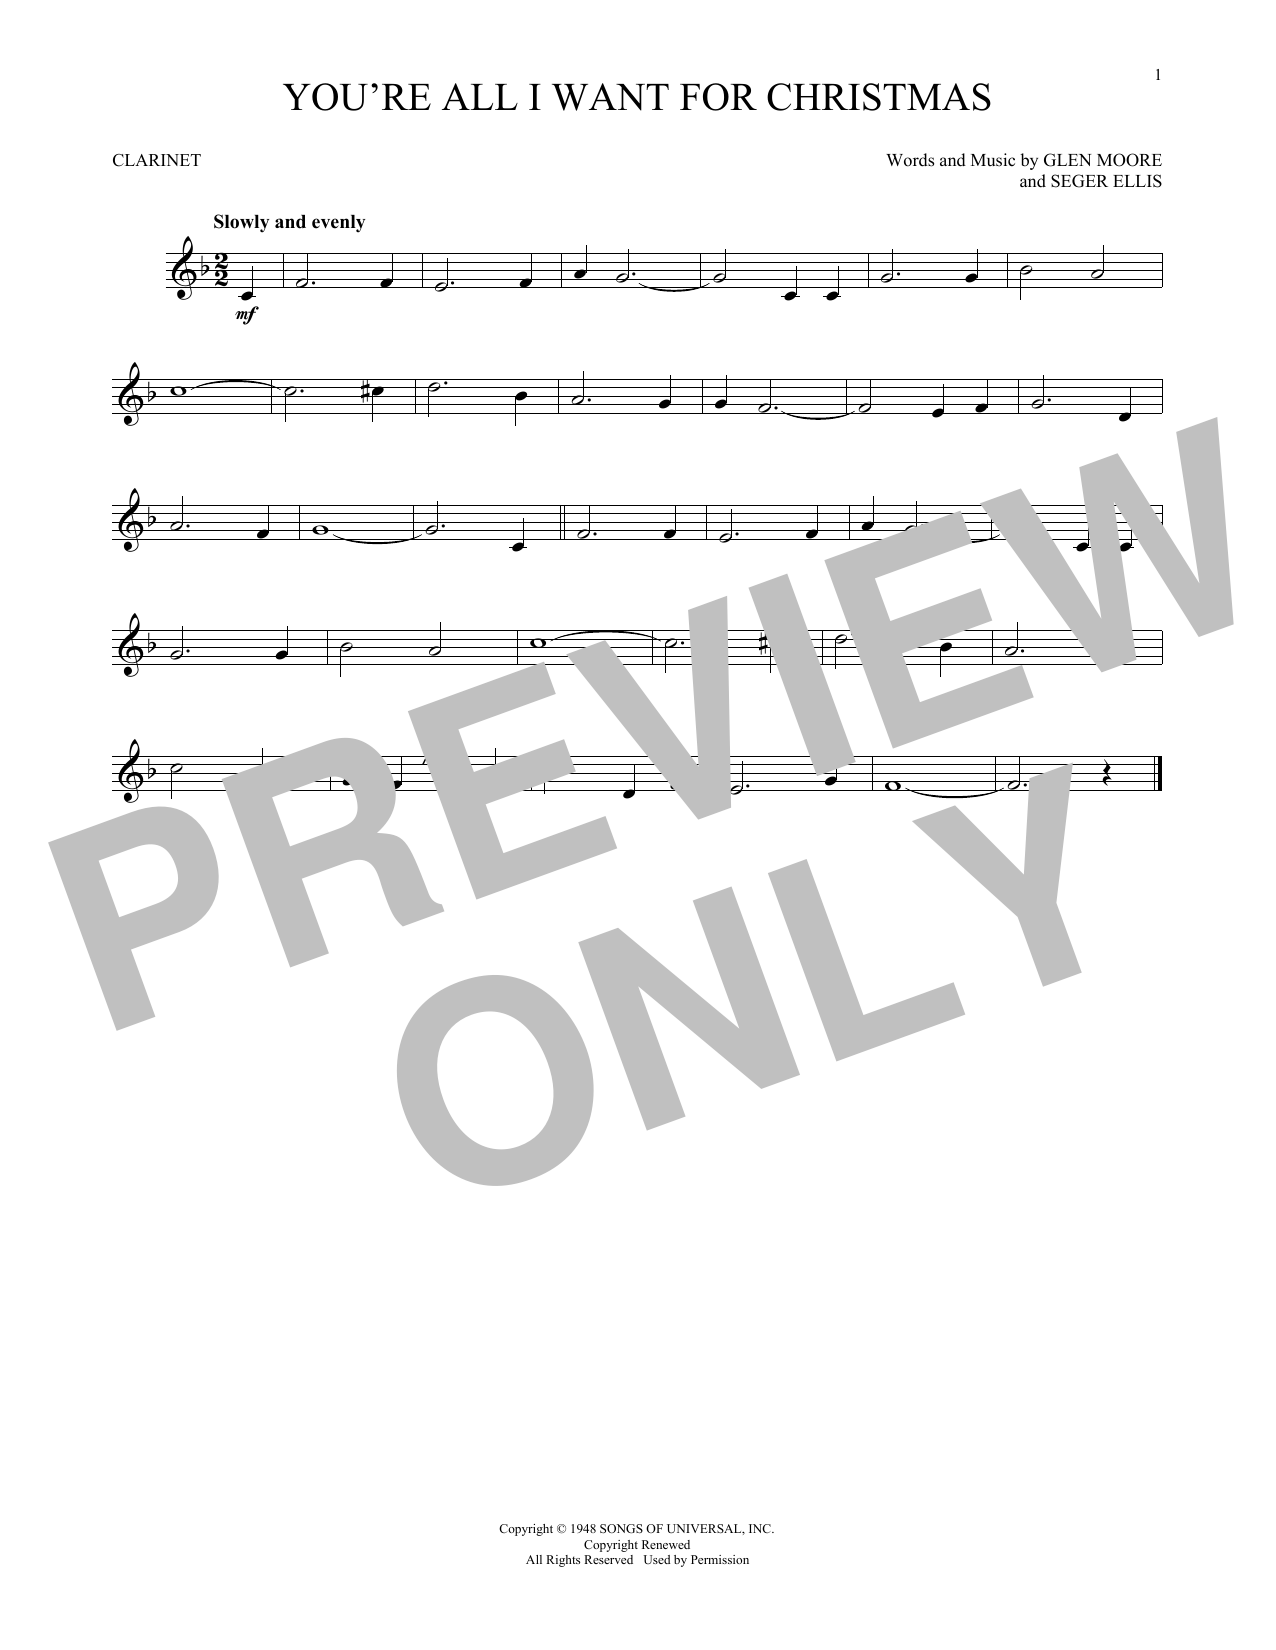 All I Want For Christmas Is You Sheet Music Pdf.Glen Moore Seger Ellis You Re All I Want For Christmas Sheet Music Notes Chords Download Printable Violin Solo Sku 166850